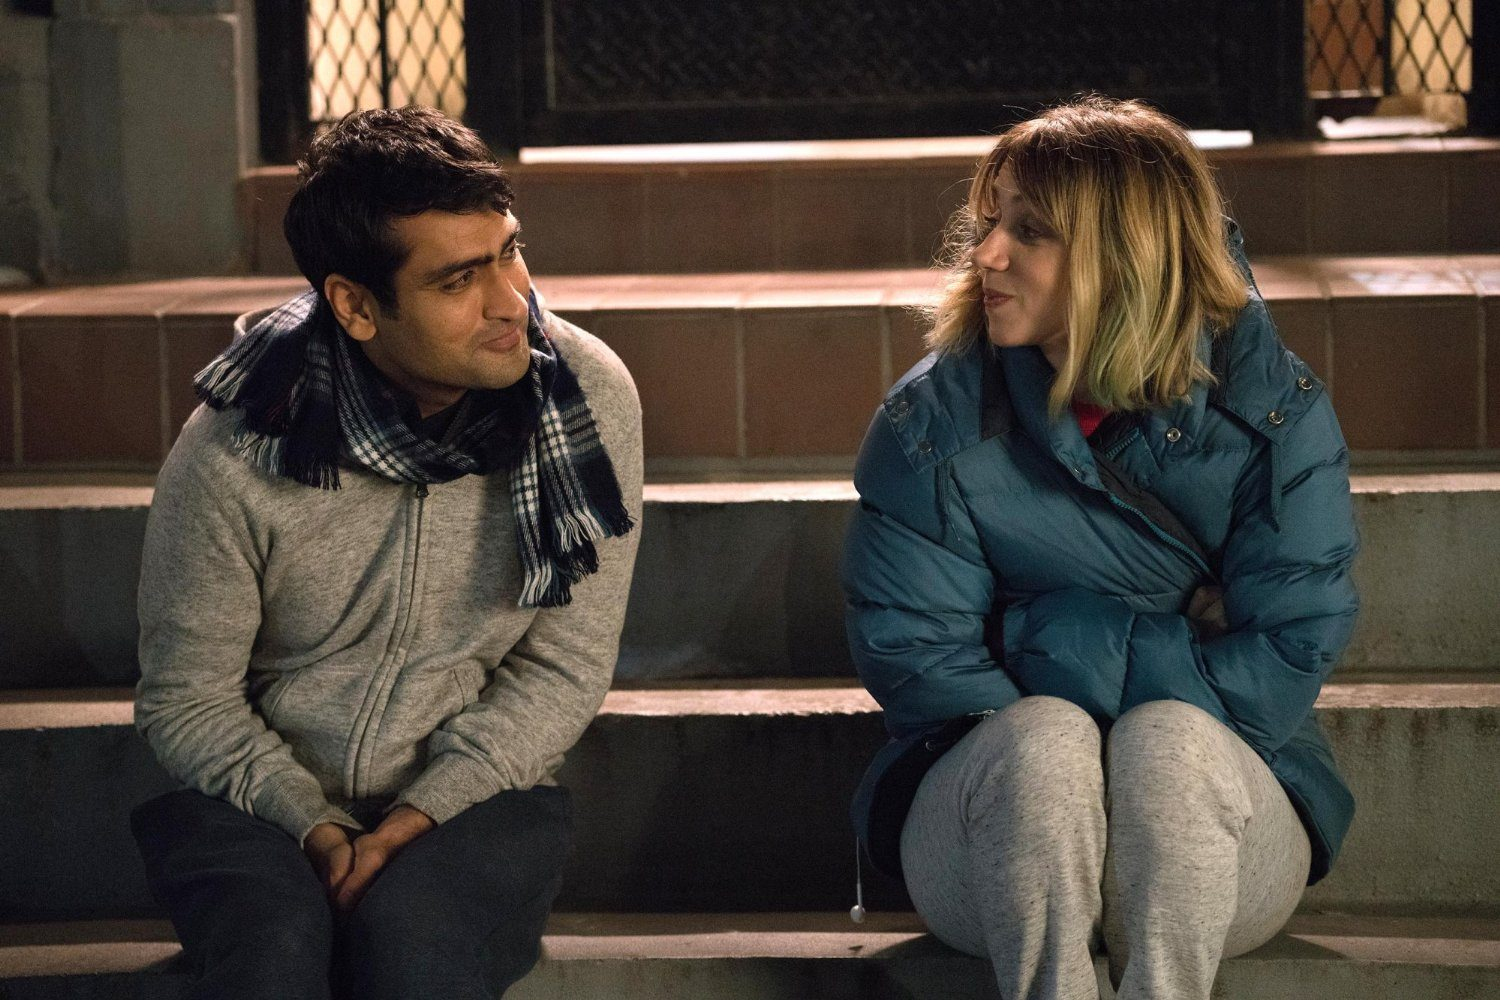 Crítica: Doentes de Amor (The Big Sick, EUA, 2017)